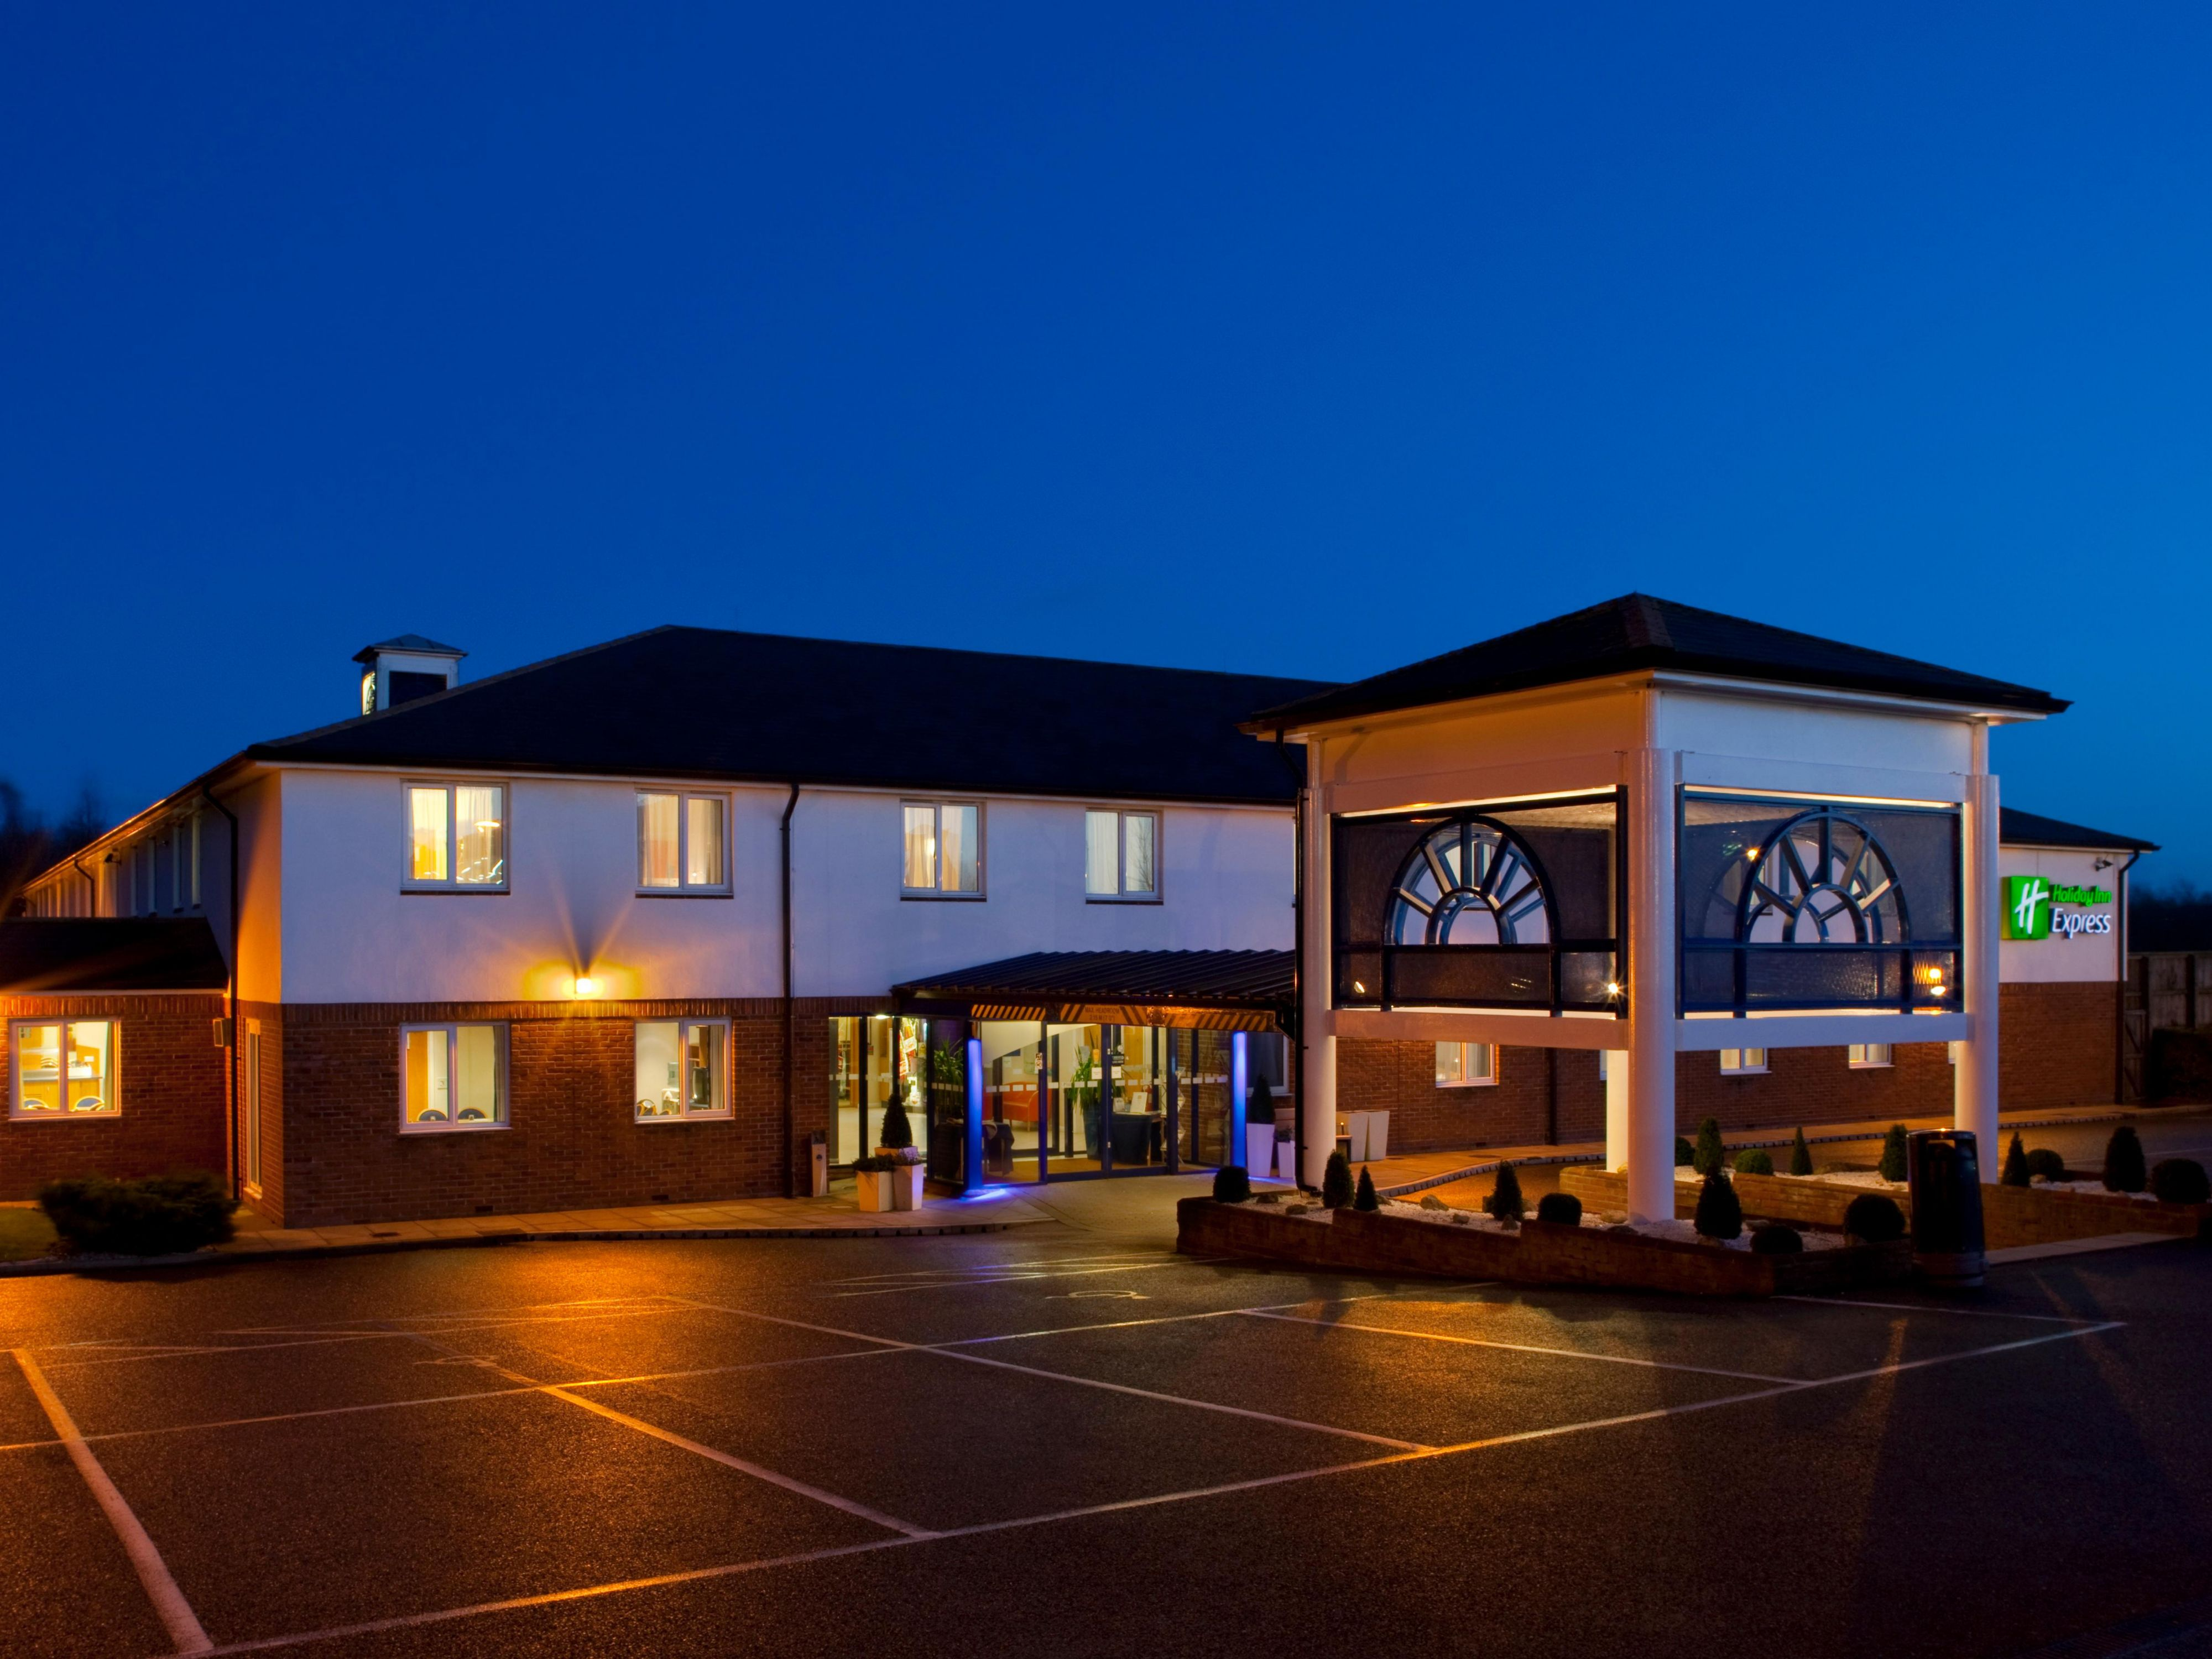 Holiday Inn Express Canterbury offers comfort at a low price